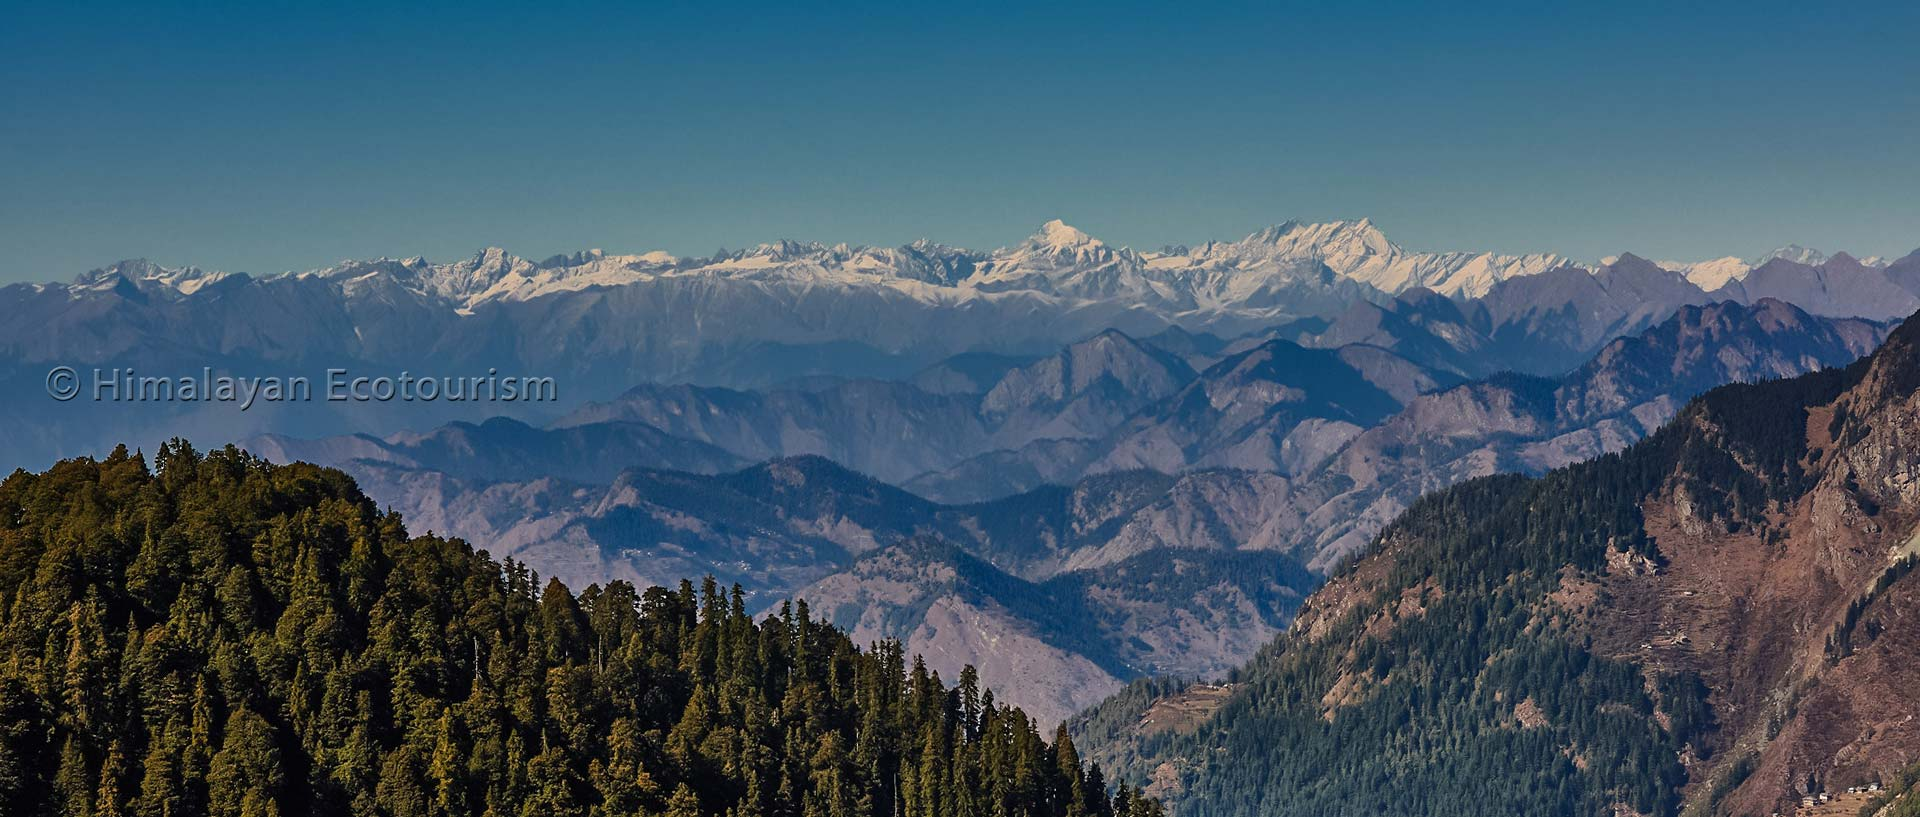 Pir Panjal range seen from Lambri, Great Himalayan National Park GHNP